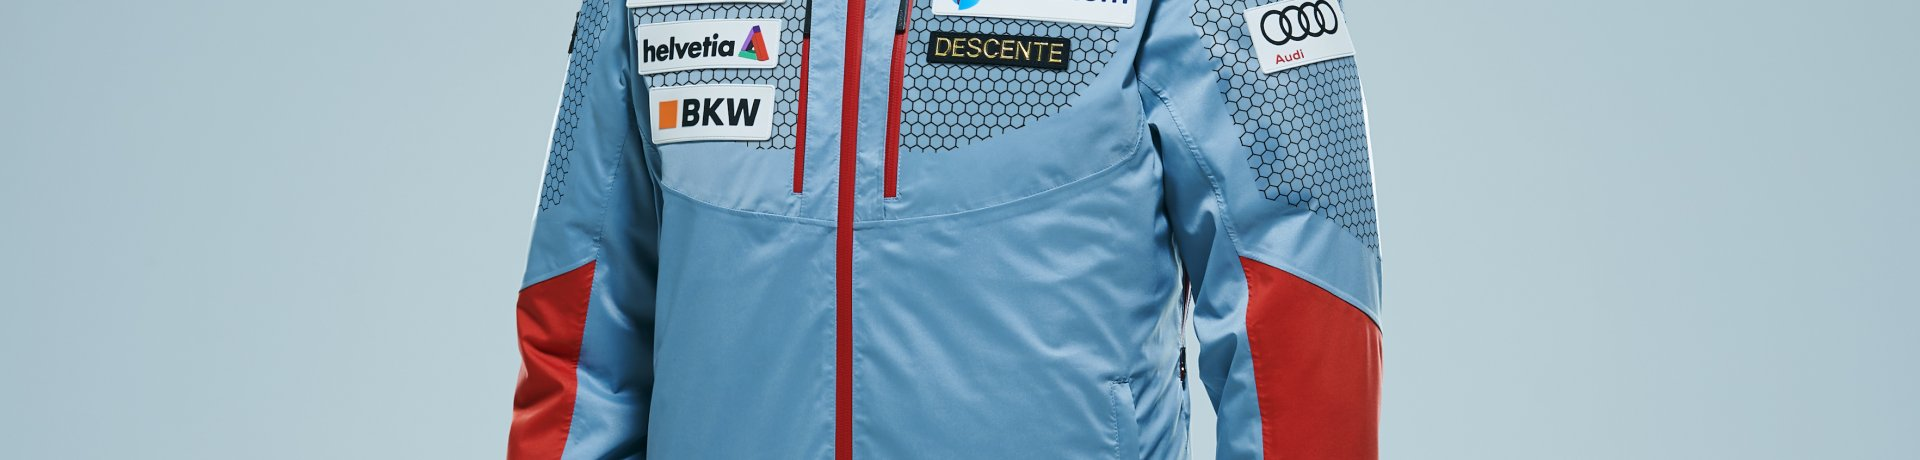 DESCENTE Swiss Ski Replica Lightweight Jacket